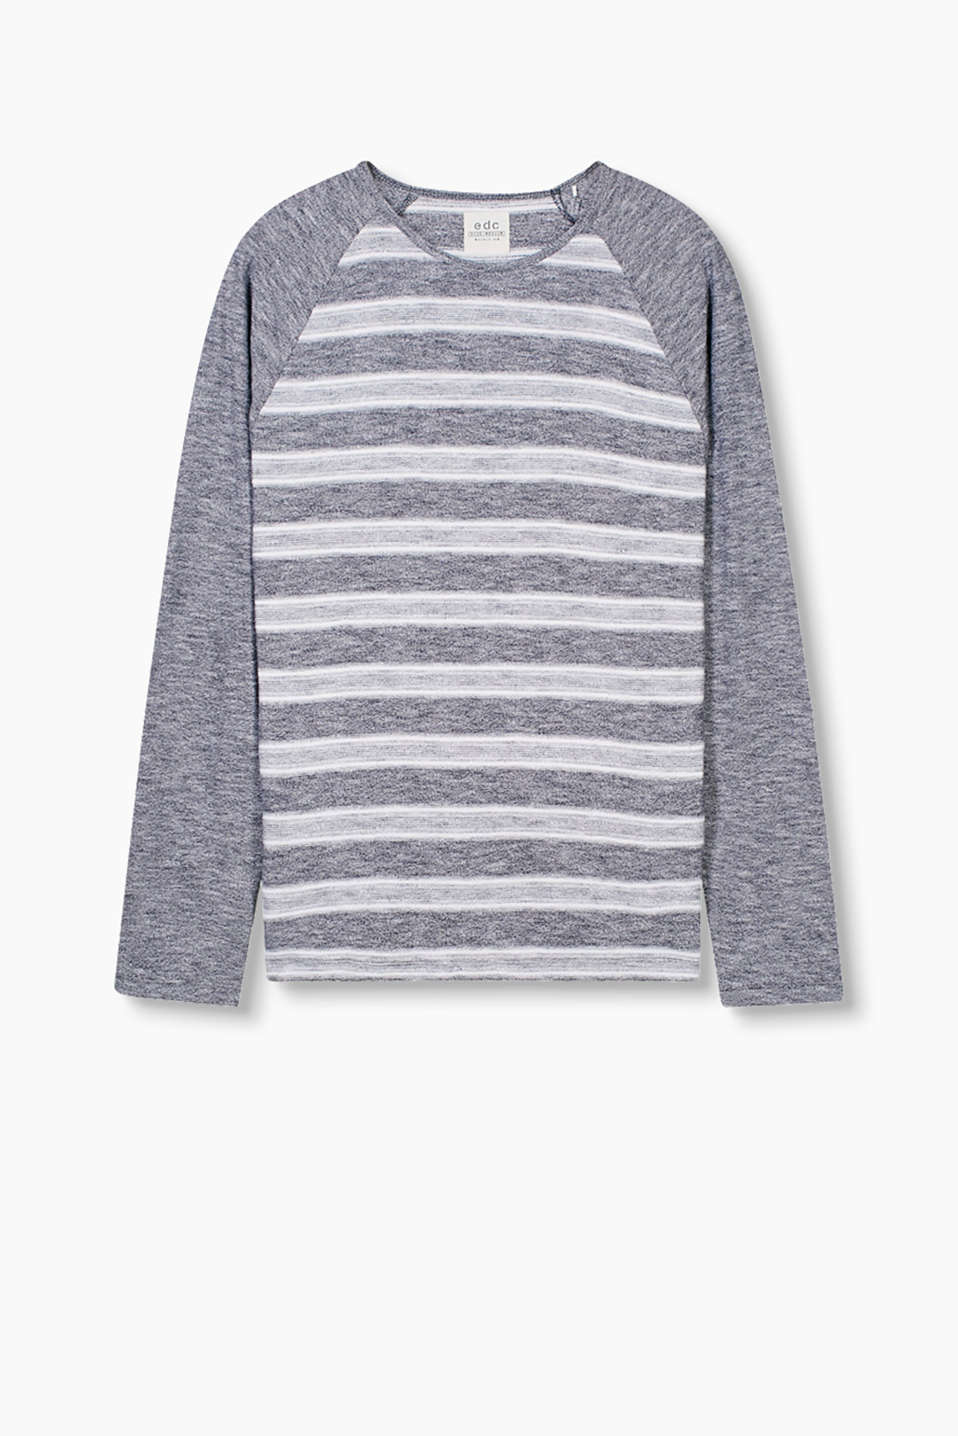 Casual long sleeve top in a striped look with contrasting raglan sleeves, made of 100% cotton